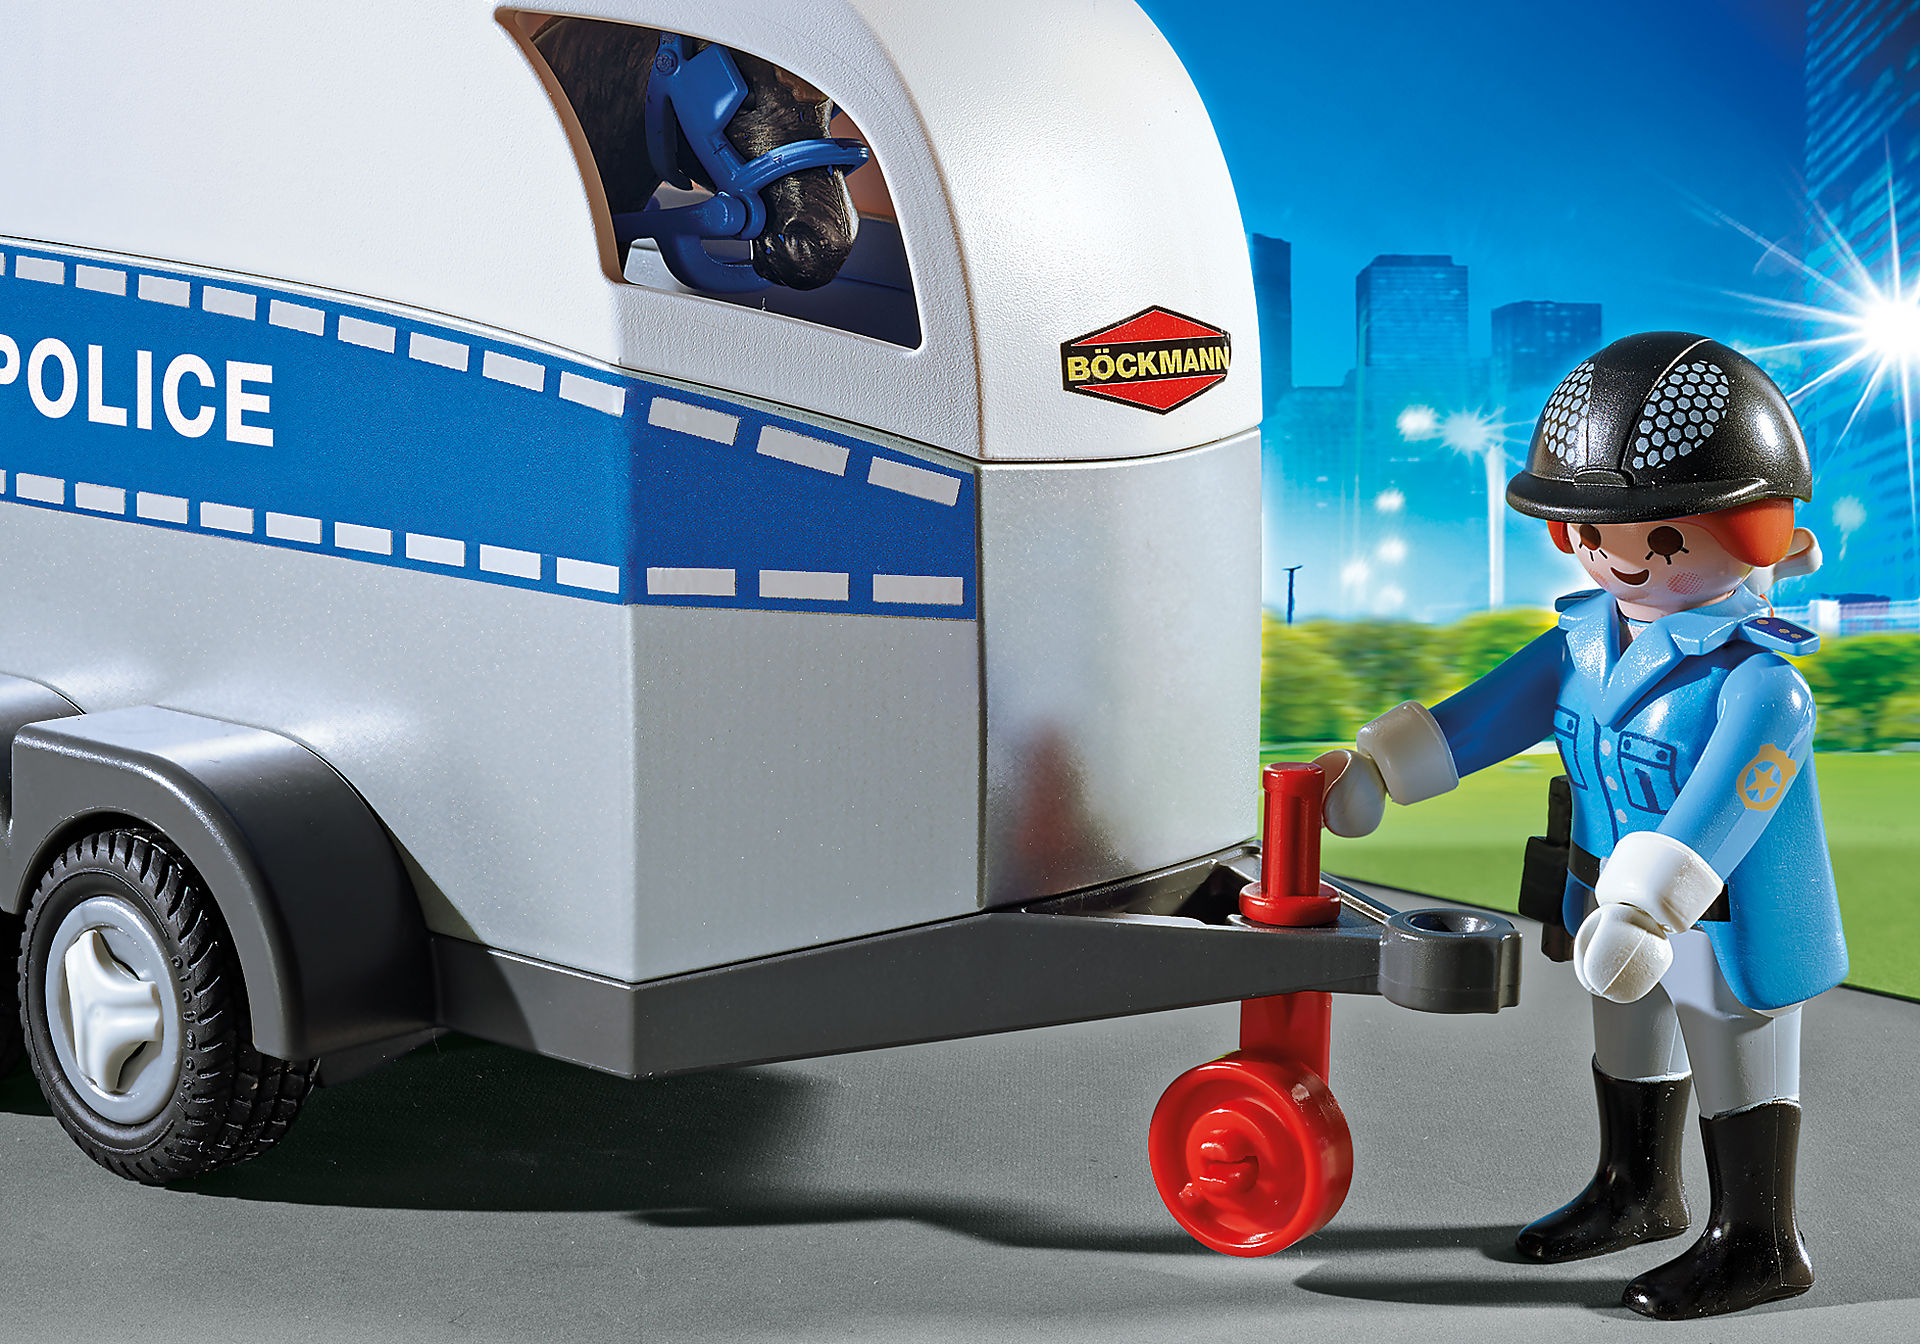 http://media.playmobil.com/i/playmobil/6922_product_extra1/Police with Horse and Trailer